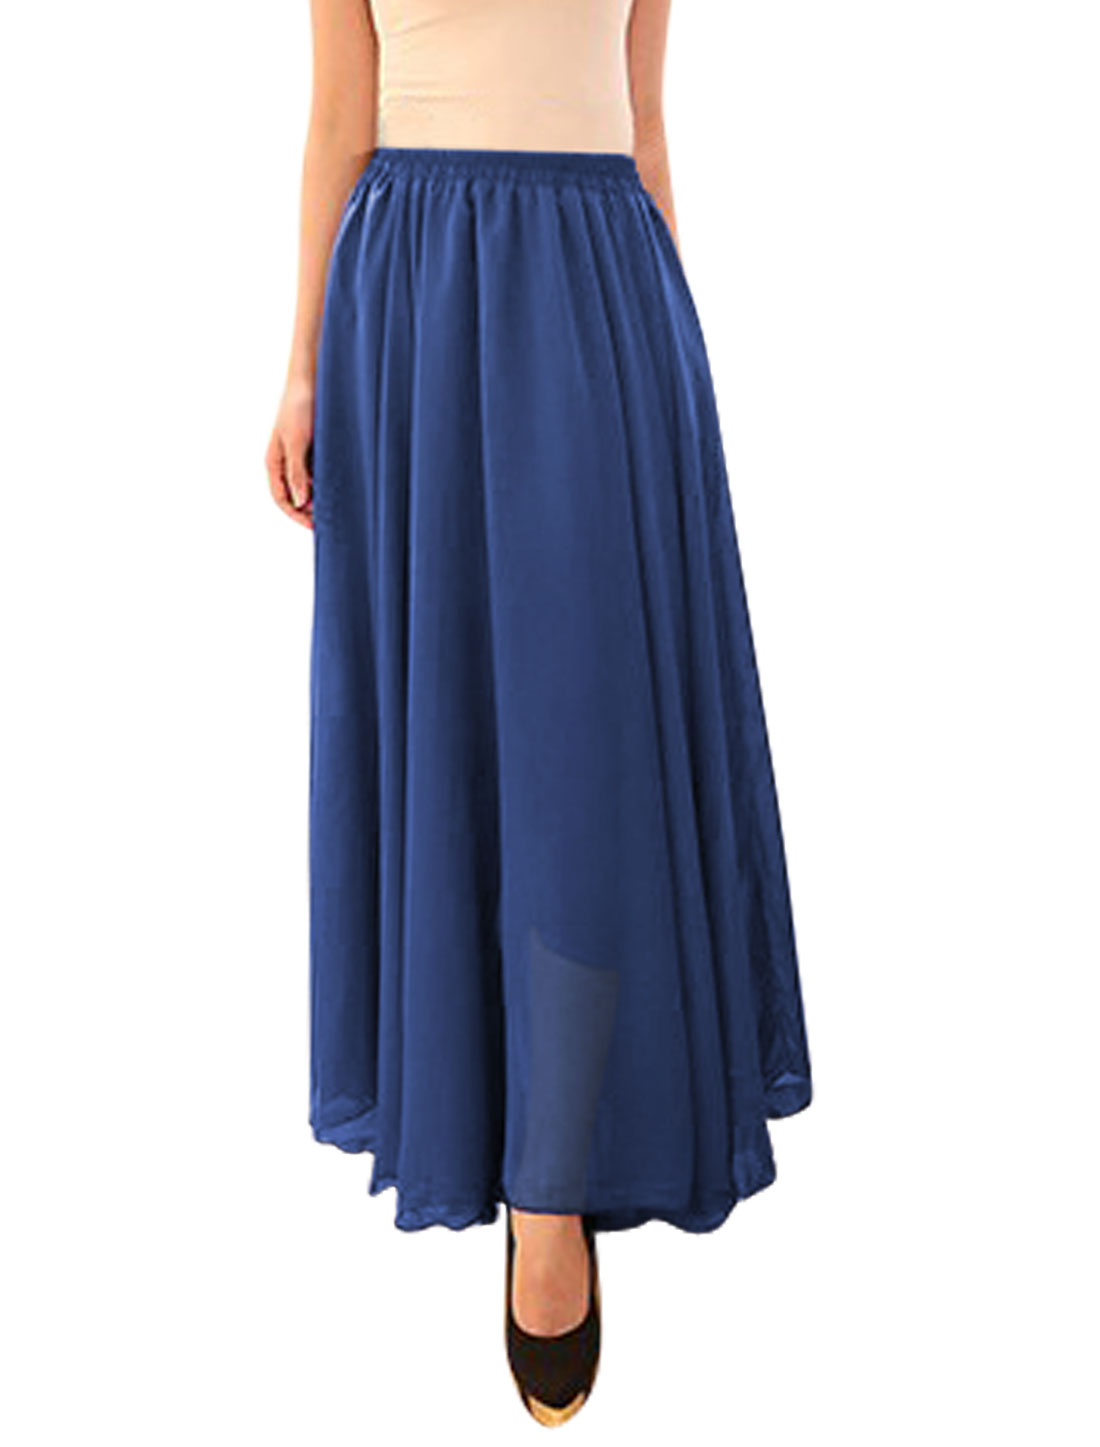 Ladies Mid Rise Elastic Waist Fully Lined Casual Long Skirts Royal Blue S